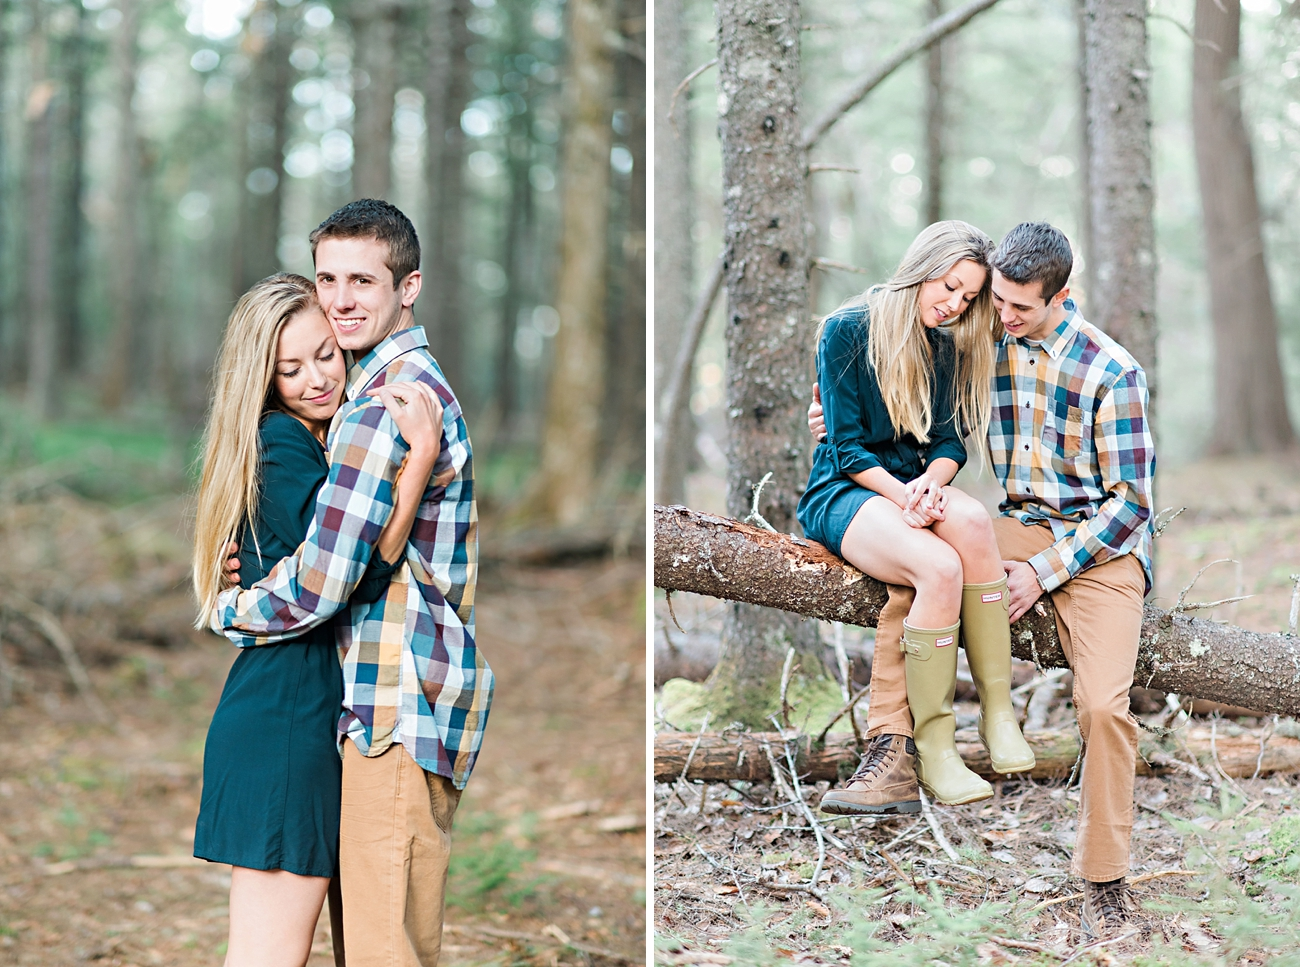 Brittany-Kriss-Engagement-Shoot044.jpg